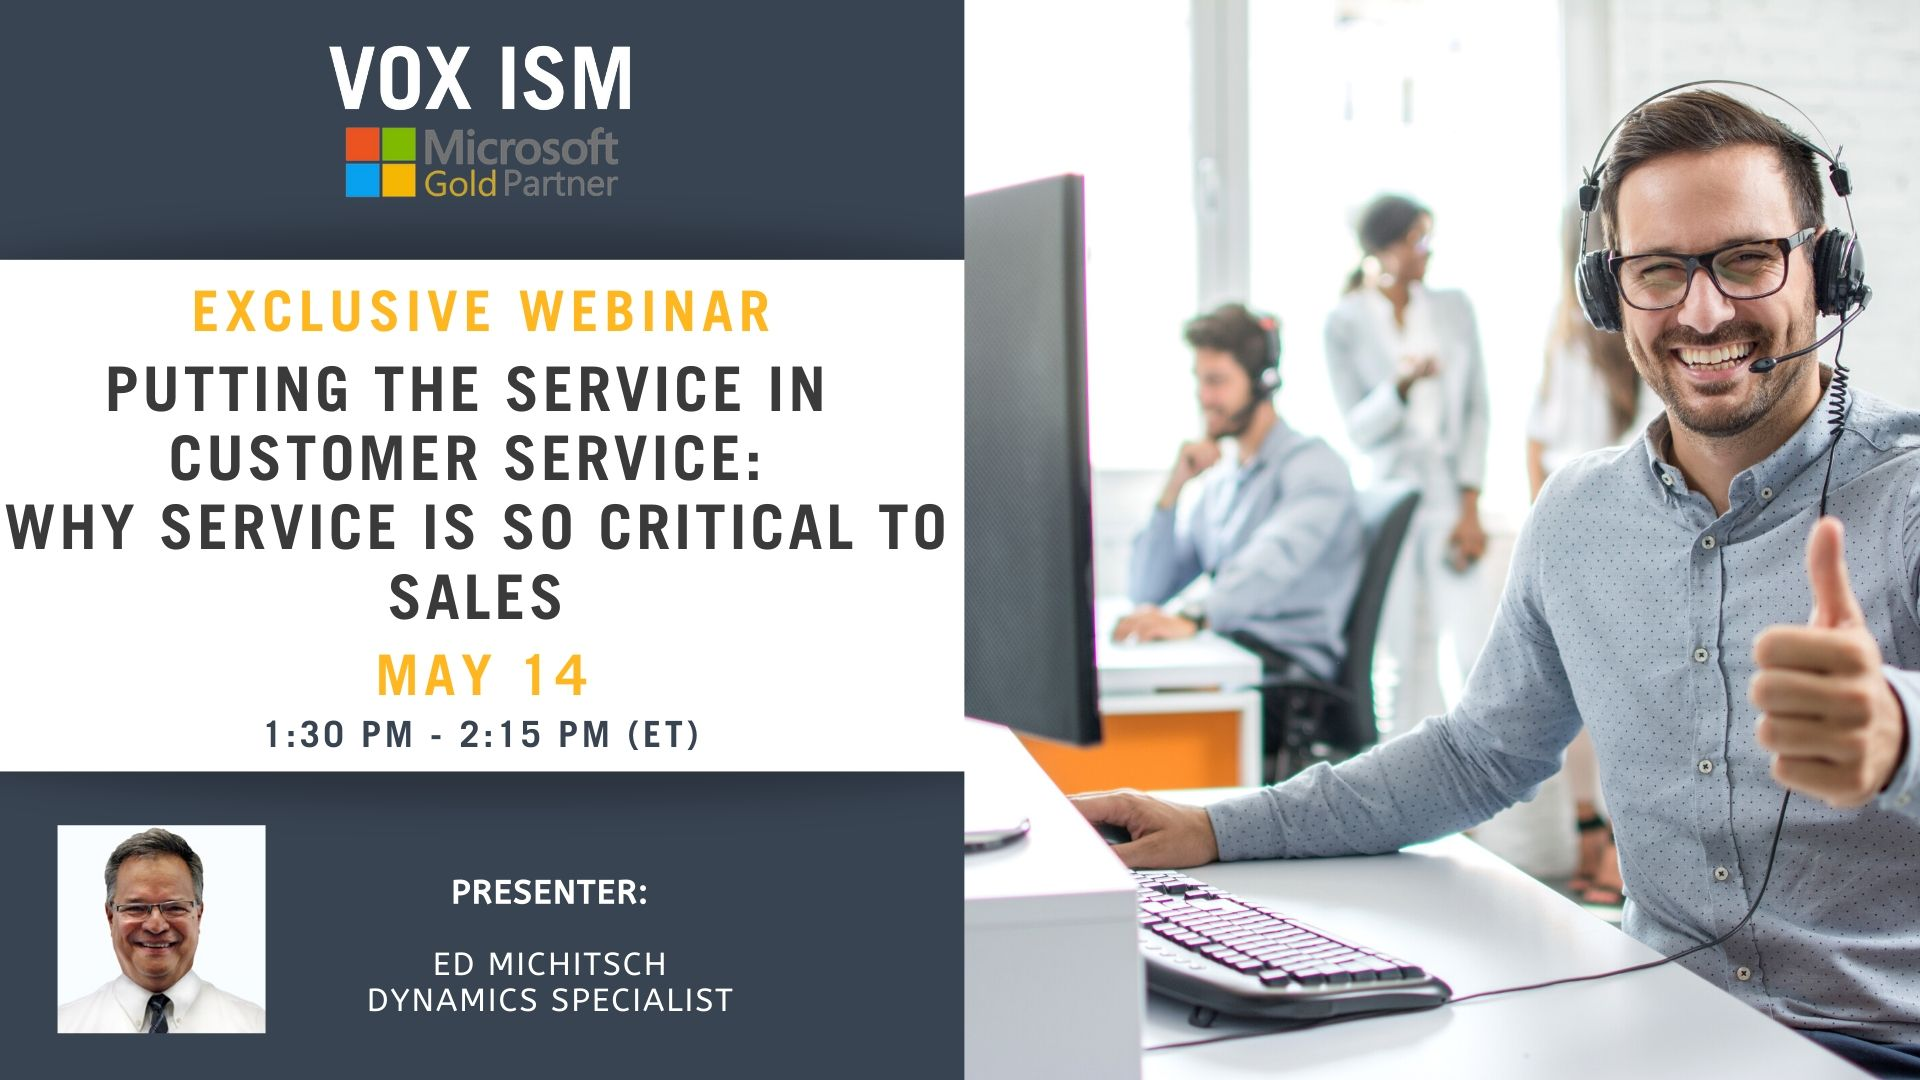 Putting the SERVICE in Customer Service: Why Service is so Critical to Sales - May 14 - Webinar VOX ISM